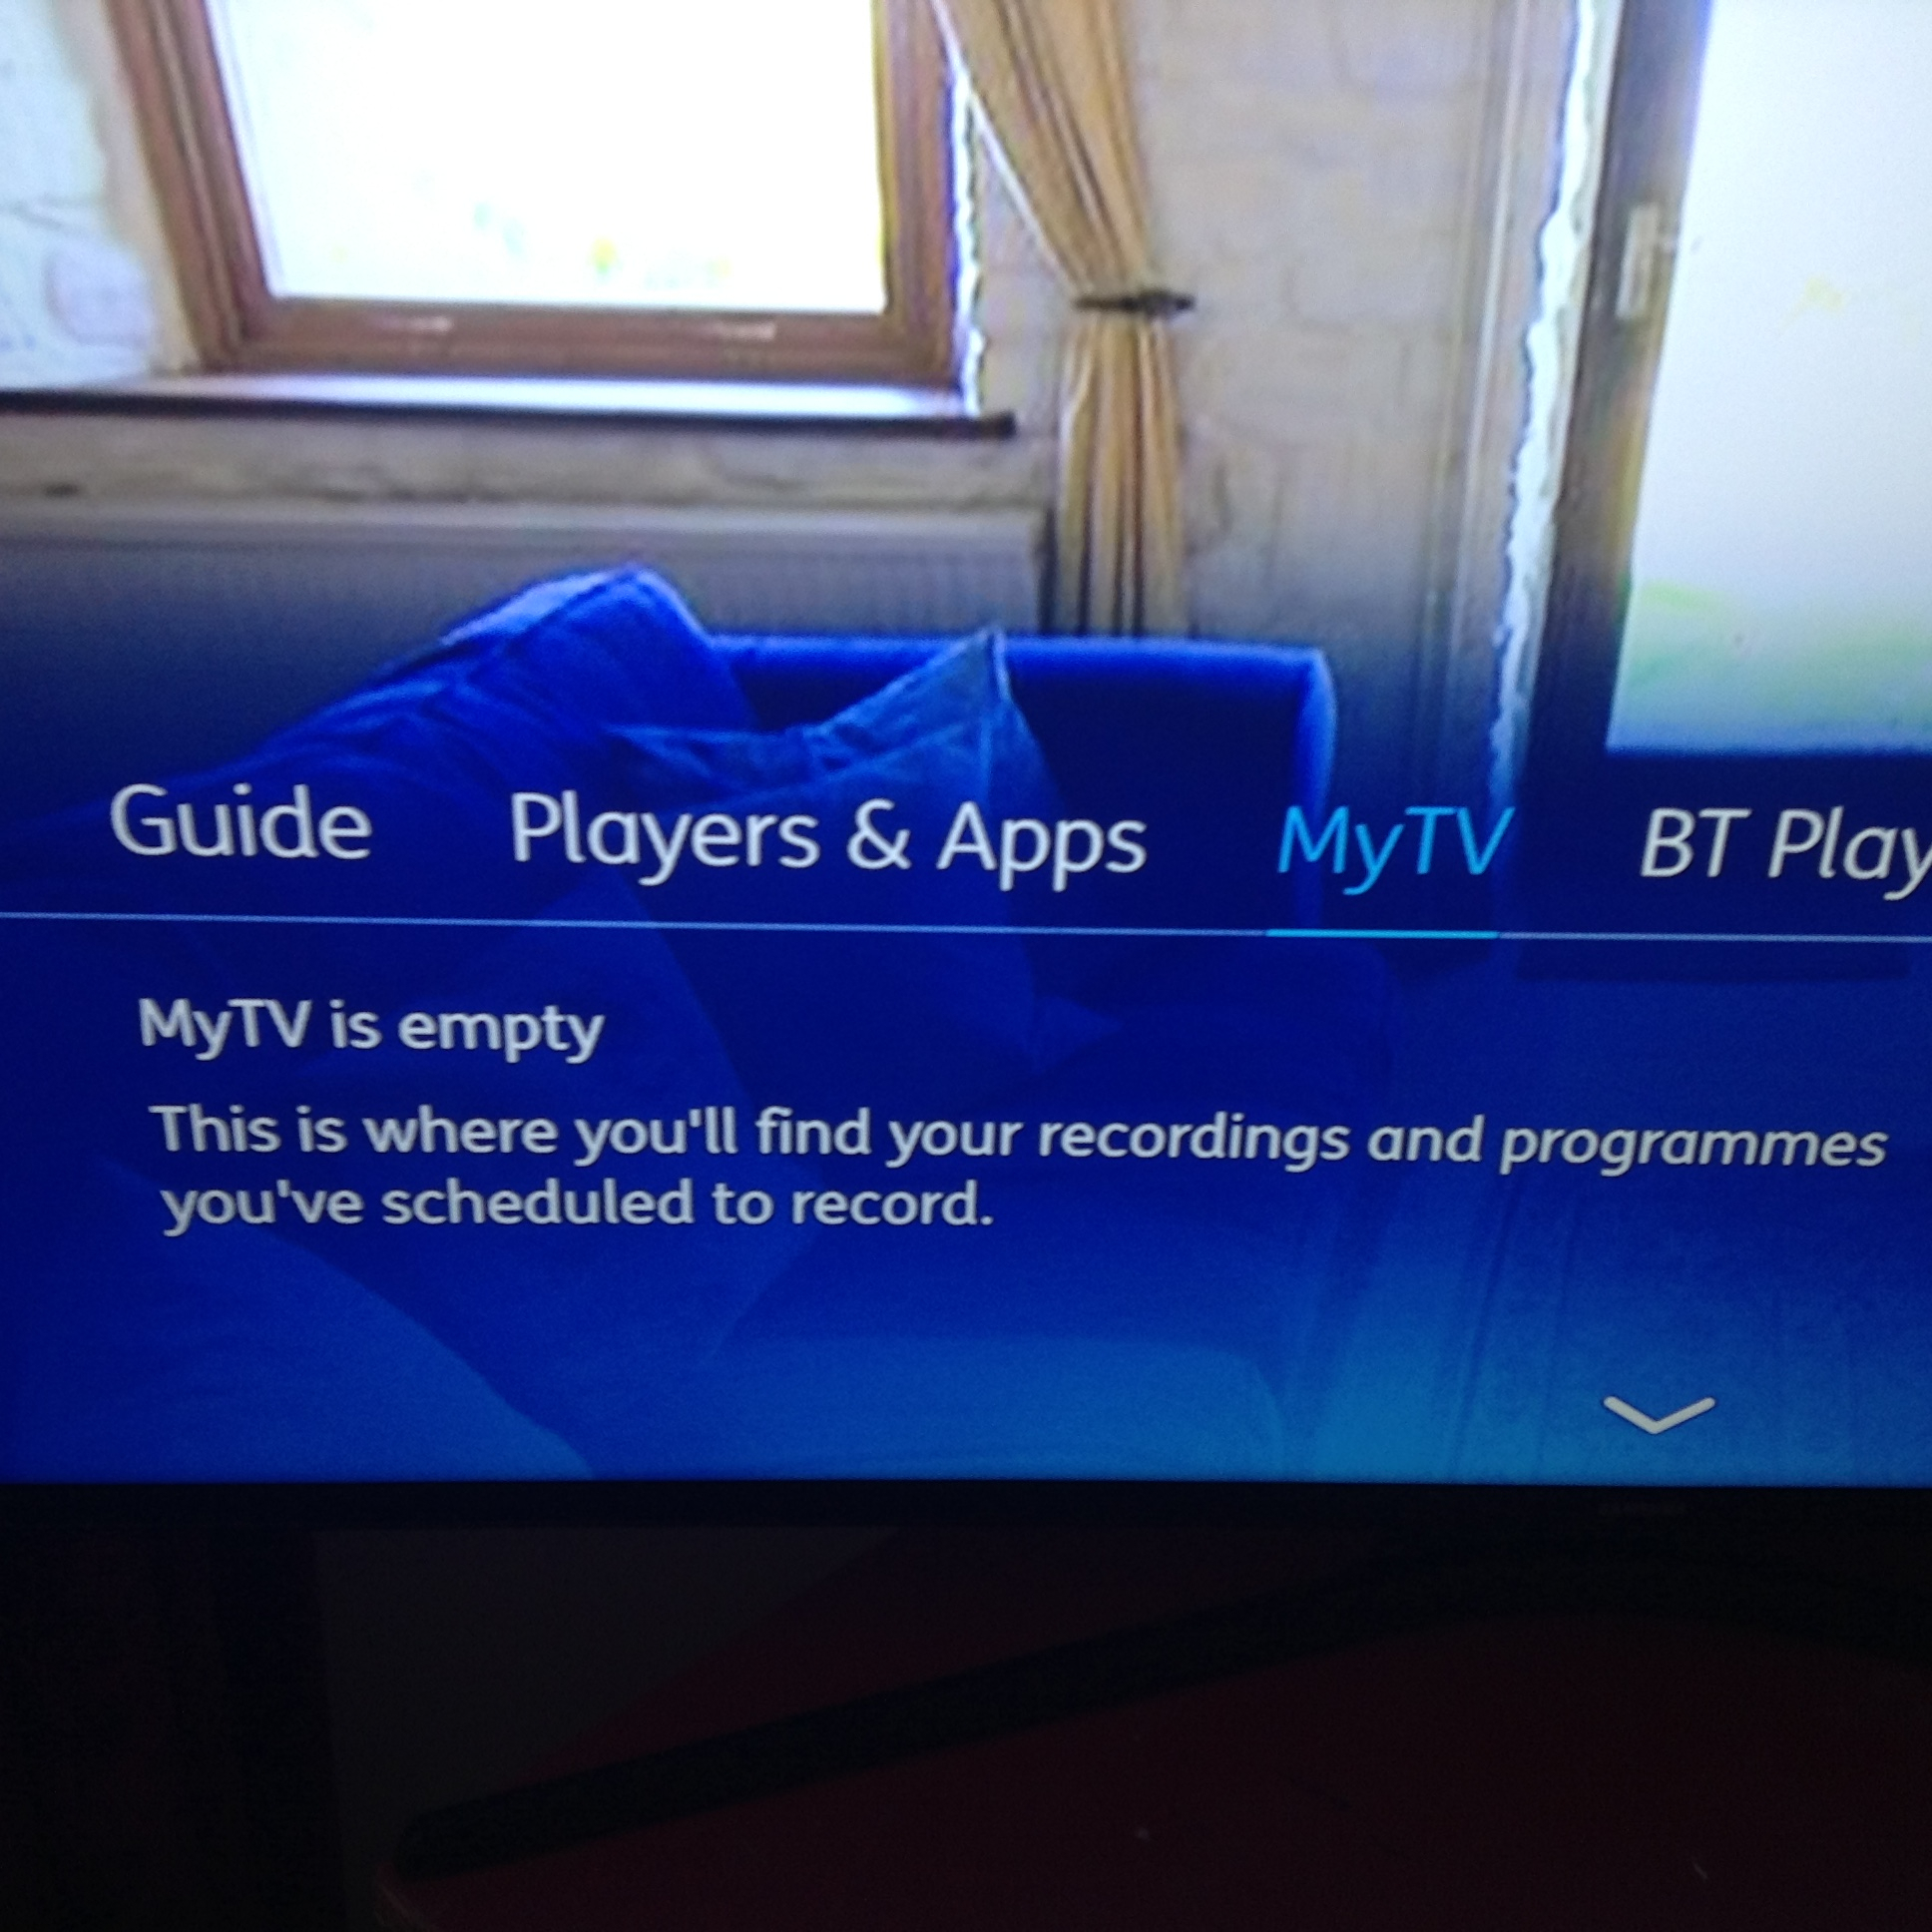 MM4 has given bogus Results — YouView Community